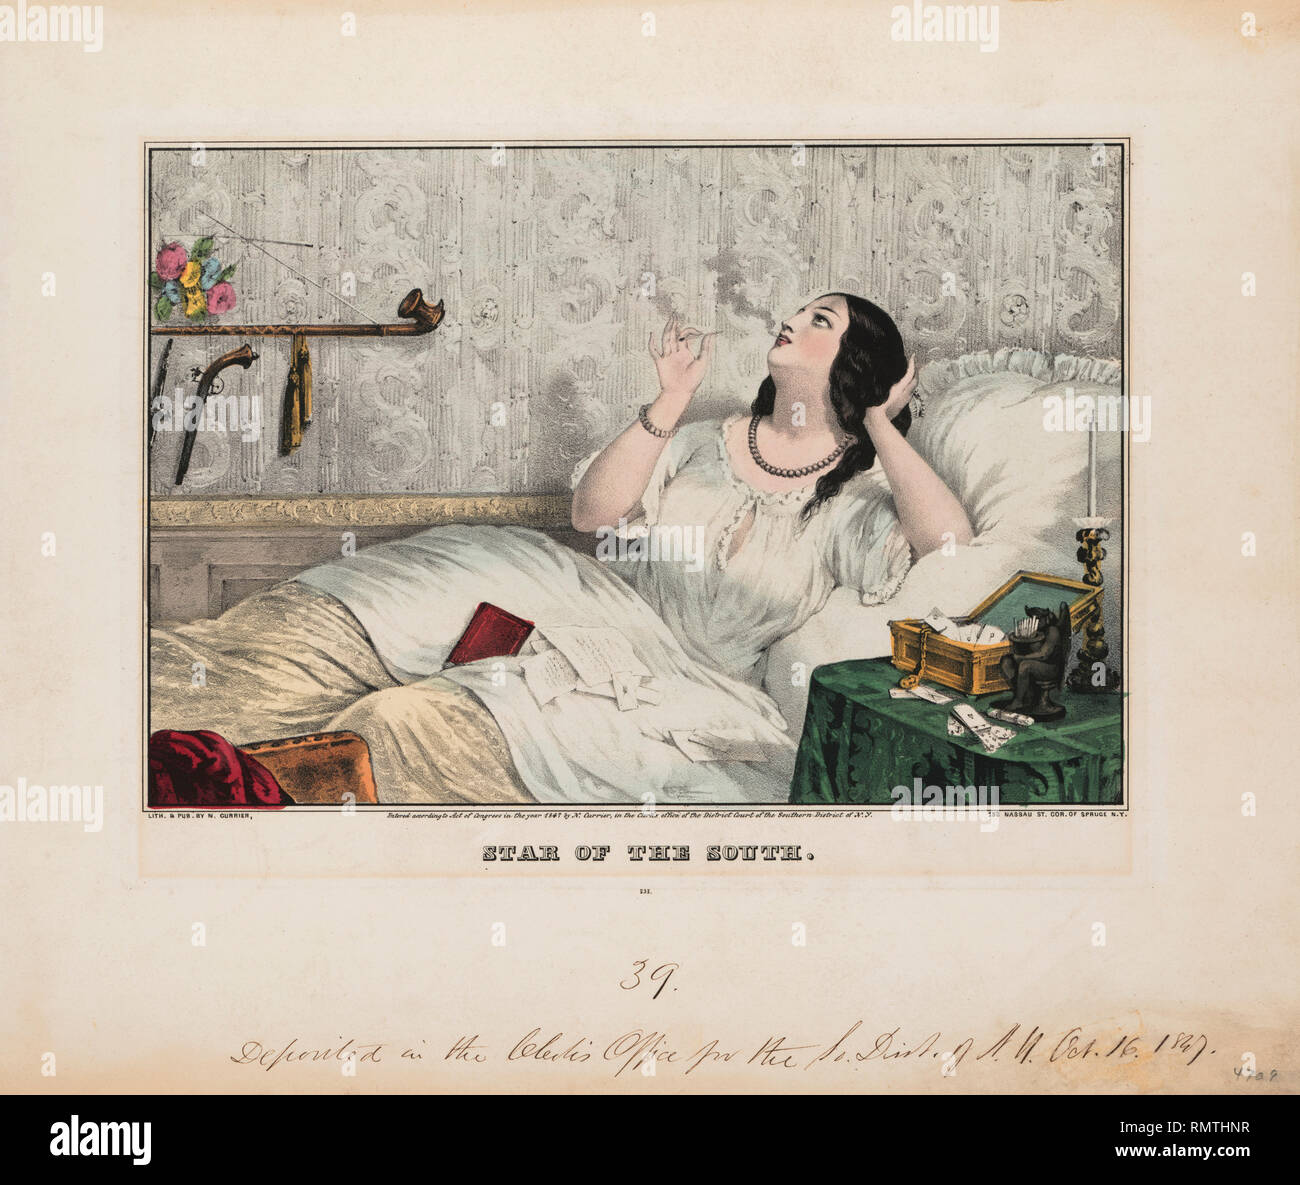 Star of the South, Reclining Portrait of Young Southern Woman Smoking while Reading Letters in Bed, Lithograph, Nathaniel Currier, 1847 - Stock Image